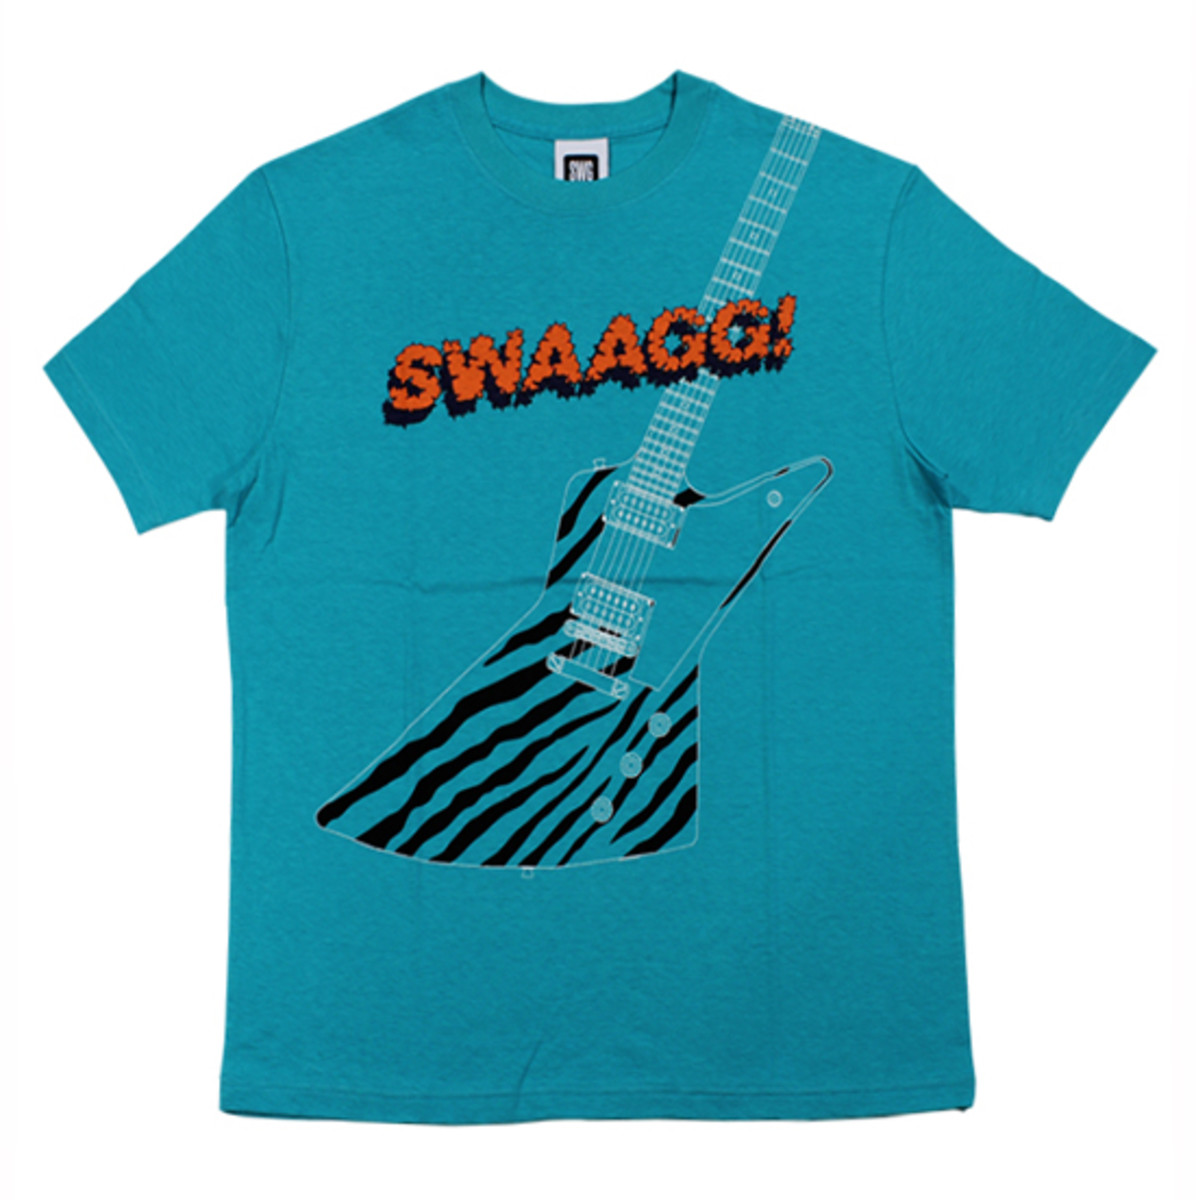 SWAAGG T-Shirt Emerald